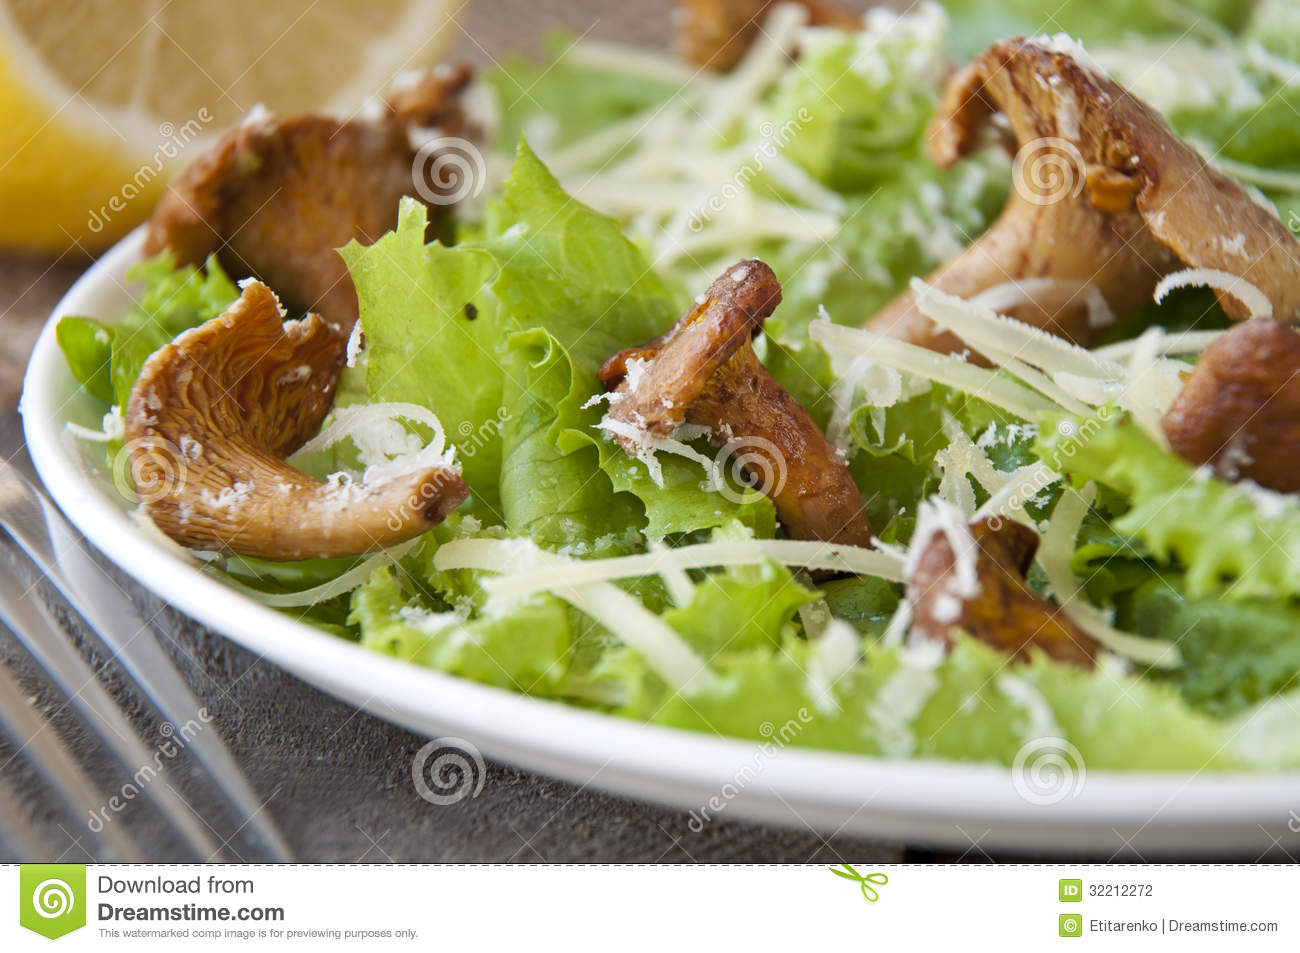 salade avec des champignons chanterelles parmesan laitue photographie stock image 32212272. Black Bedroom Furniture Sets. Home Design Ideas